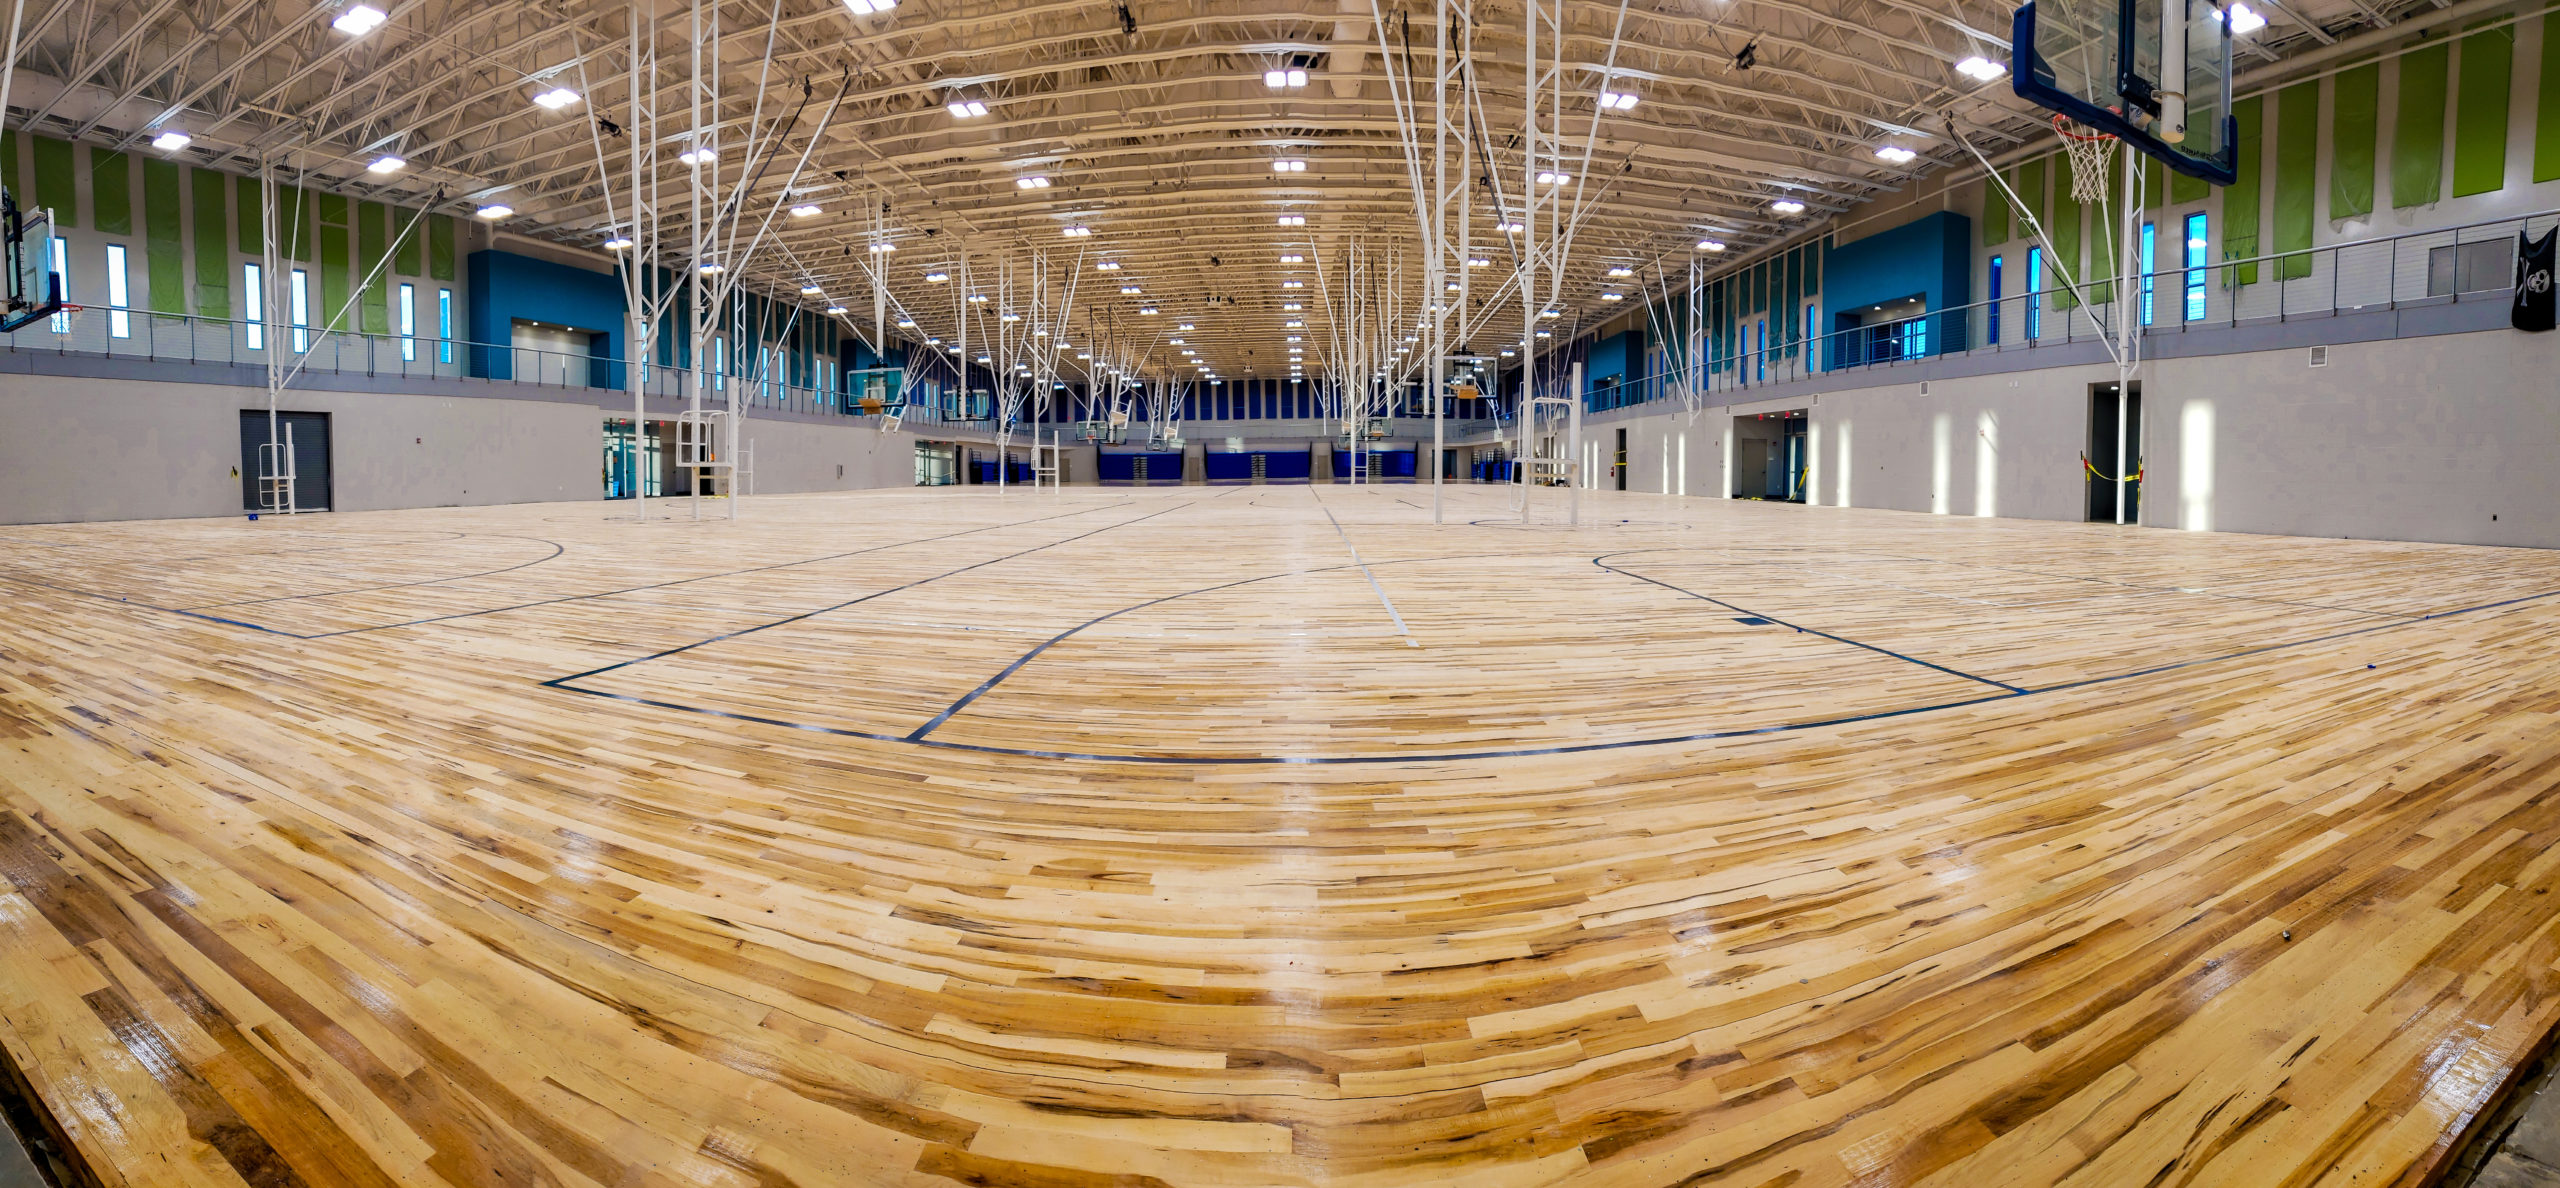 A view of the basketball courts from inside the Winter Haven Fieldhouse and Conference Center